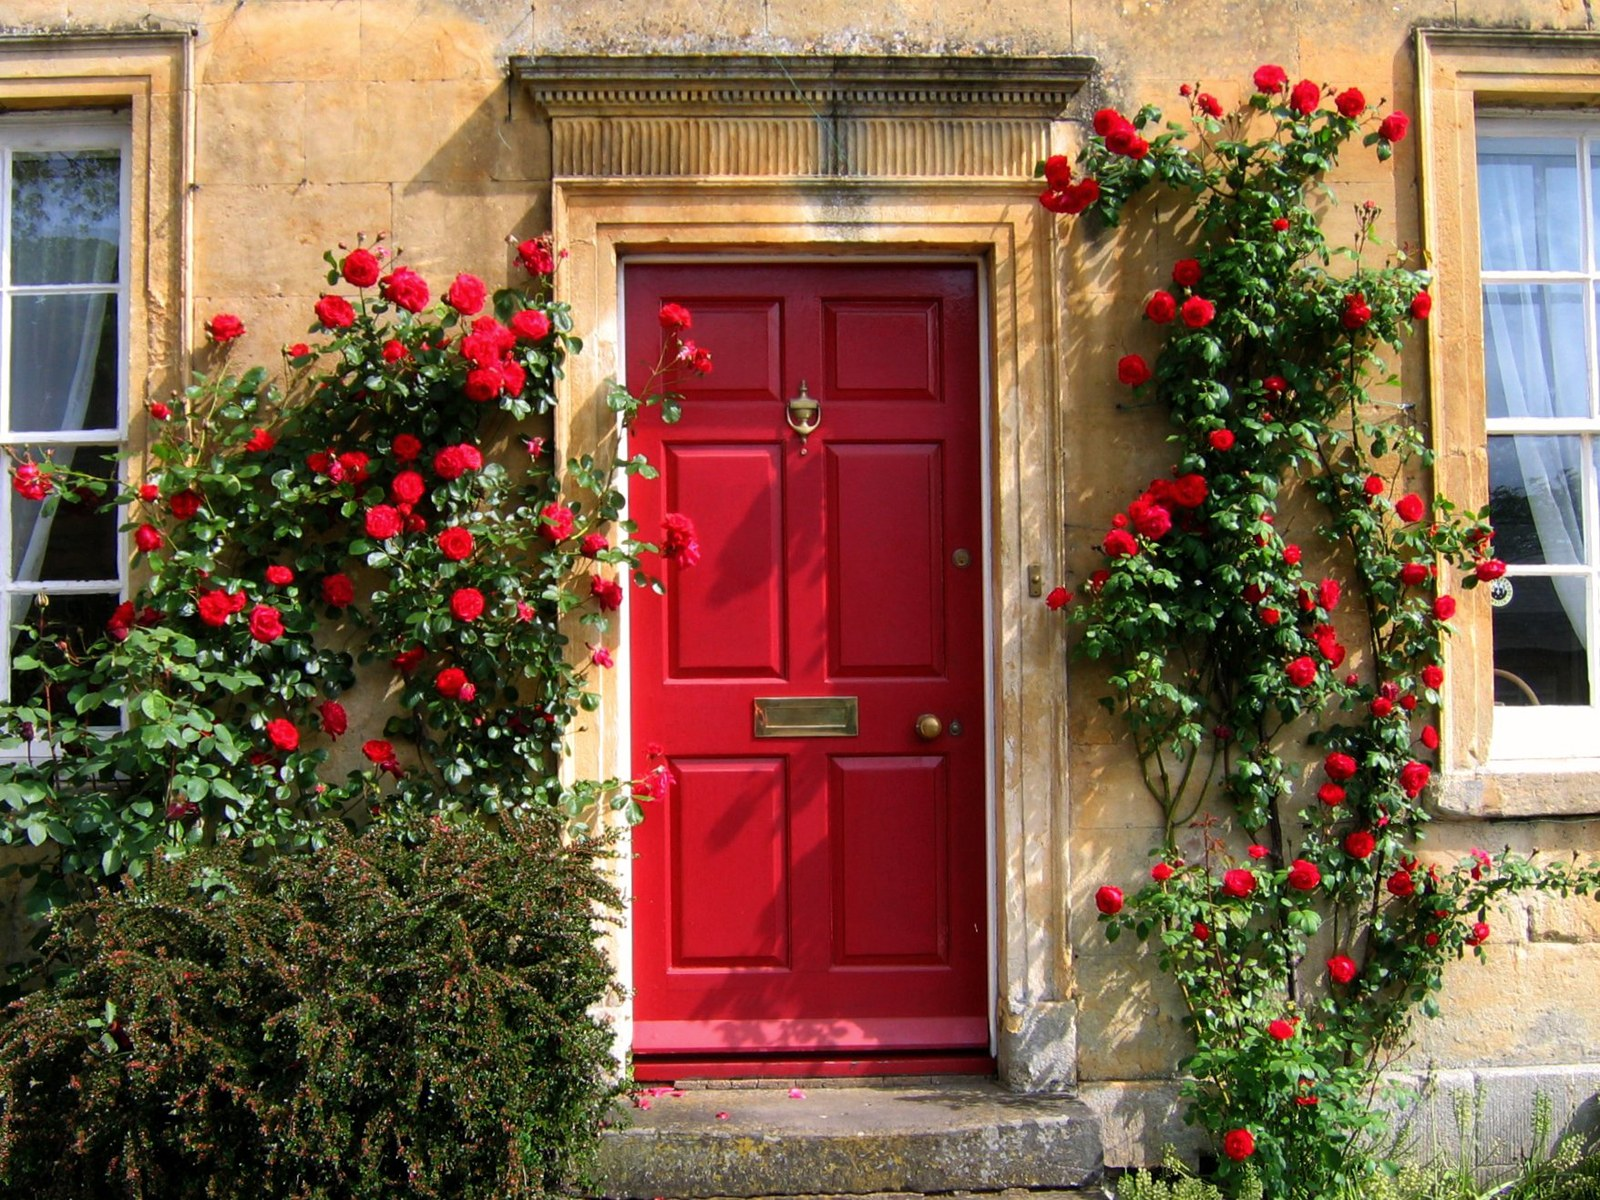 Red front doors for homes - Noticeable And Vibrant